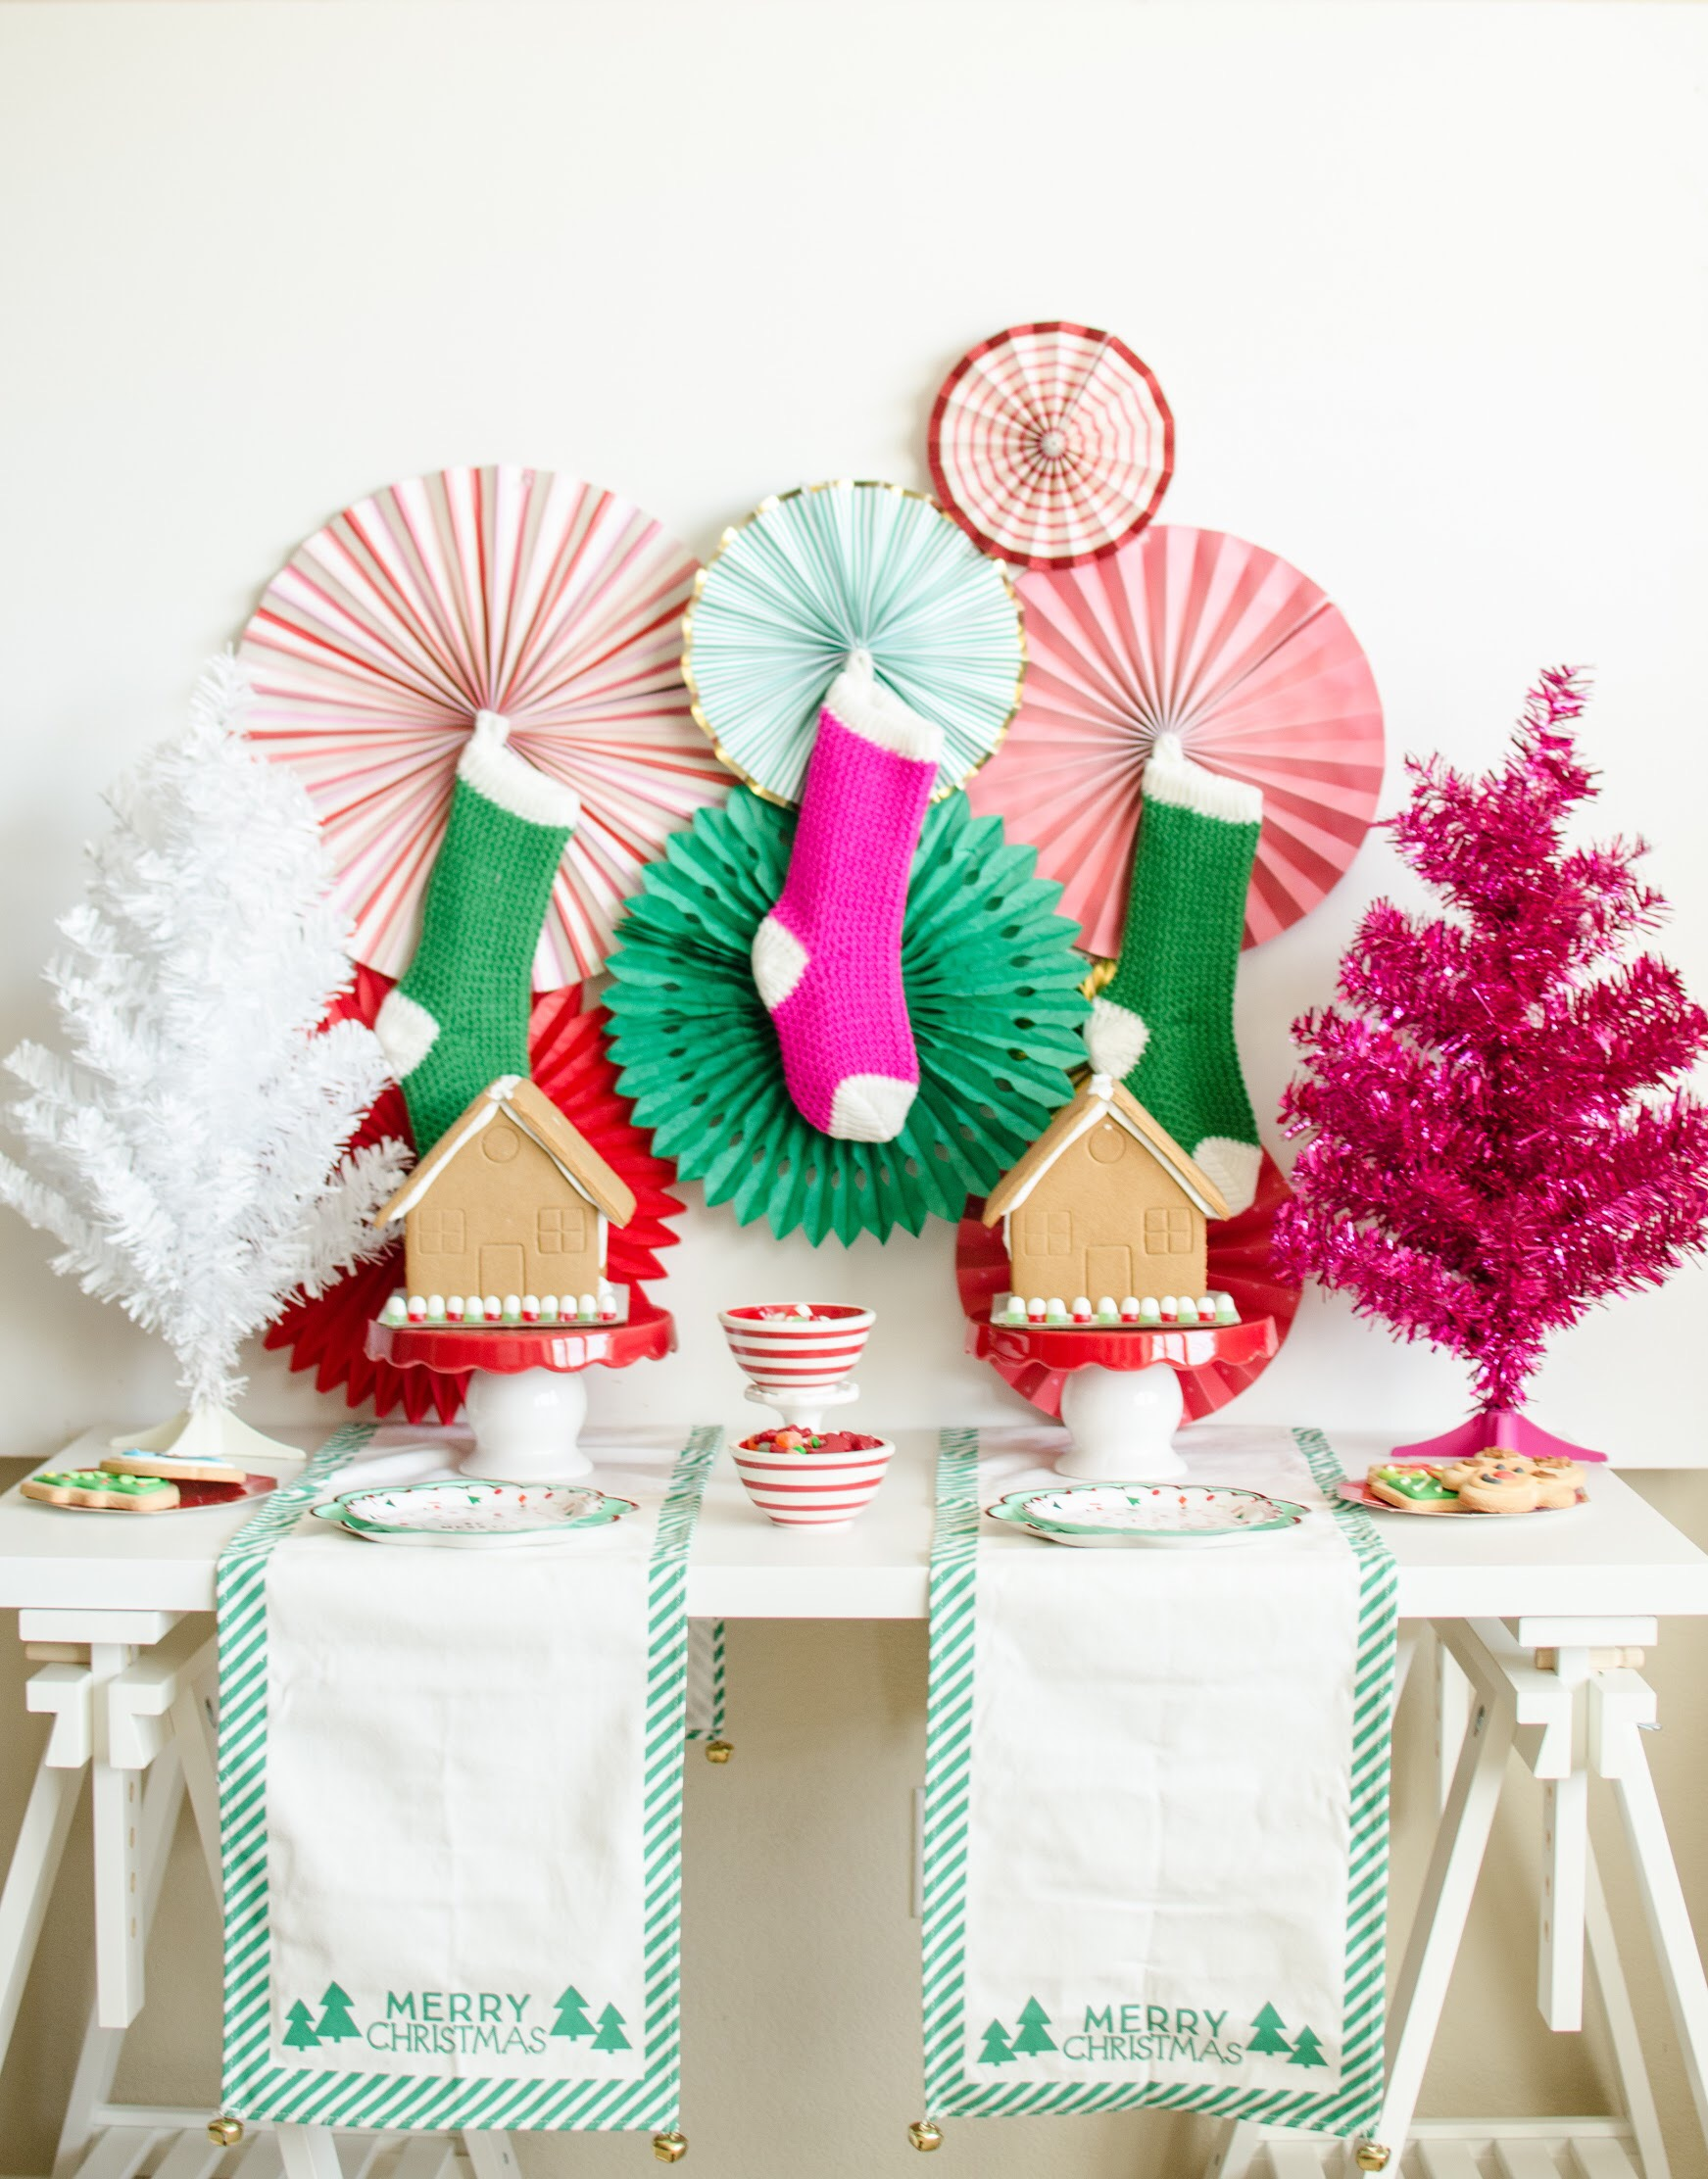 Surprise your kids this holiday season with an amazing Gingerbread House Decorating Party, styled by Austin, Texas based Event planner, Mint Event Design. The complete how to party guide can be found on www.minteventdesign.com #gingerbreadhouse #holidayparty #holidays #partyideas #christmasparty #holidaypartyideas #kidsparty